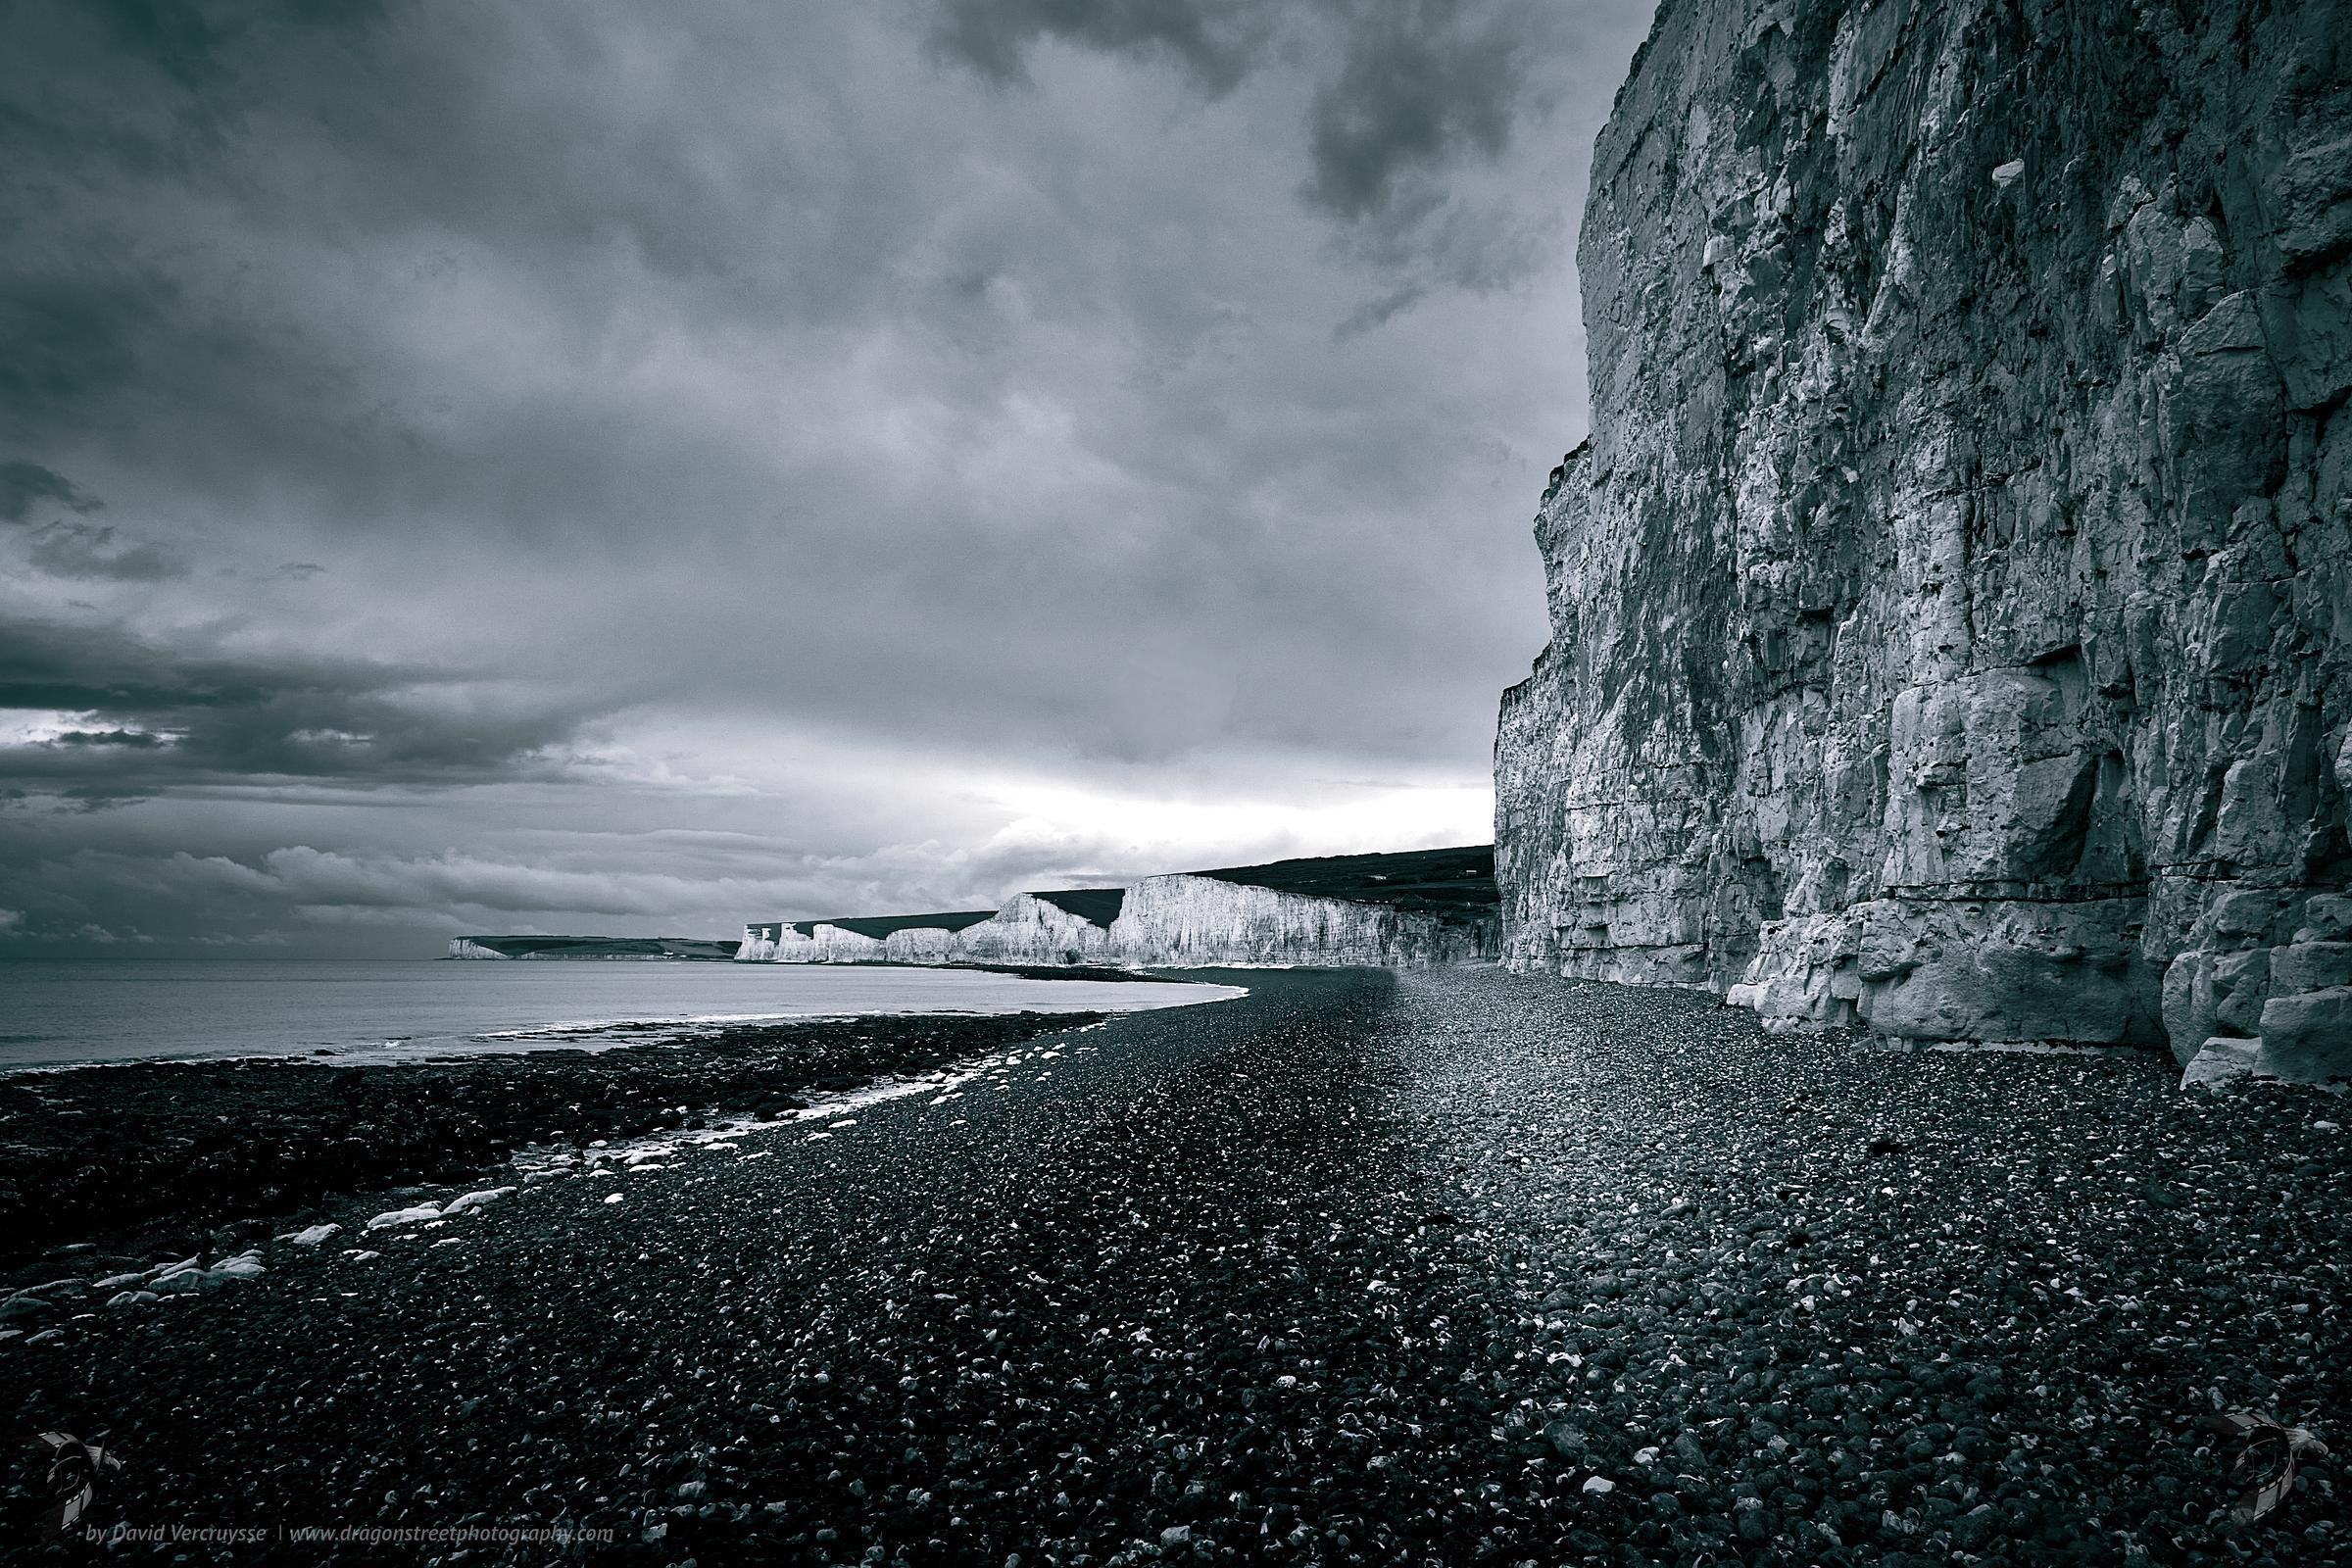 Plage de Beachy head